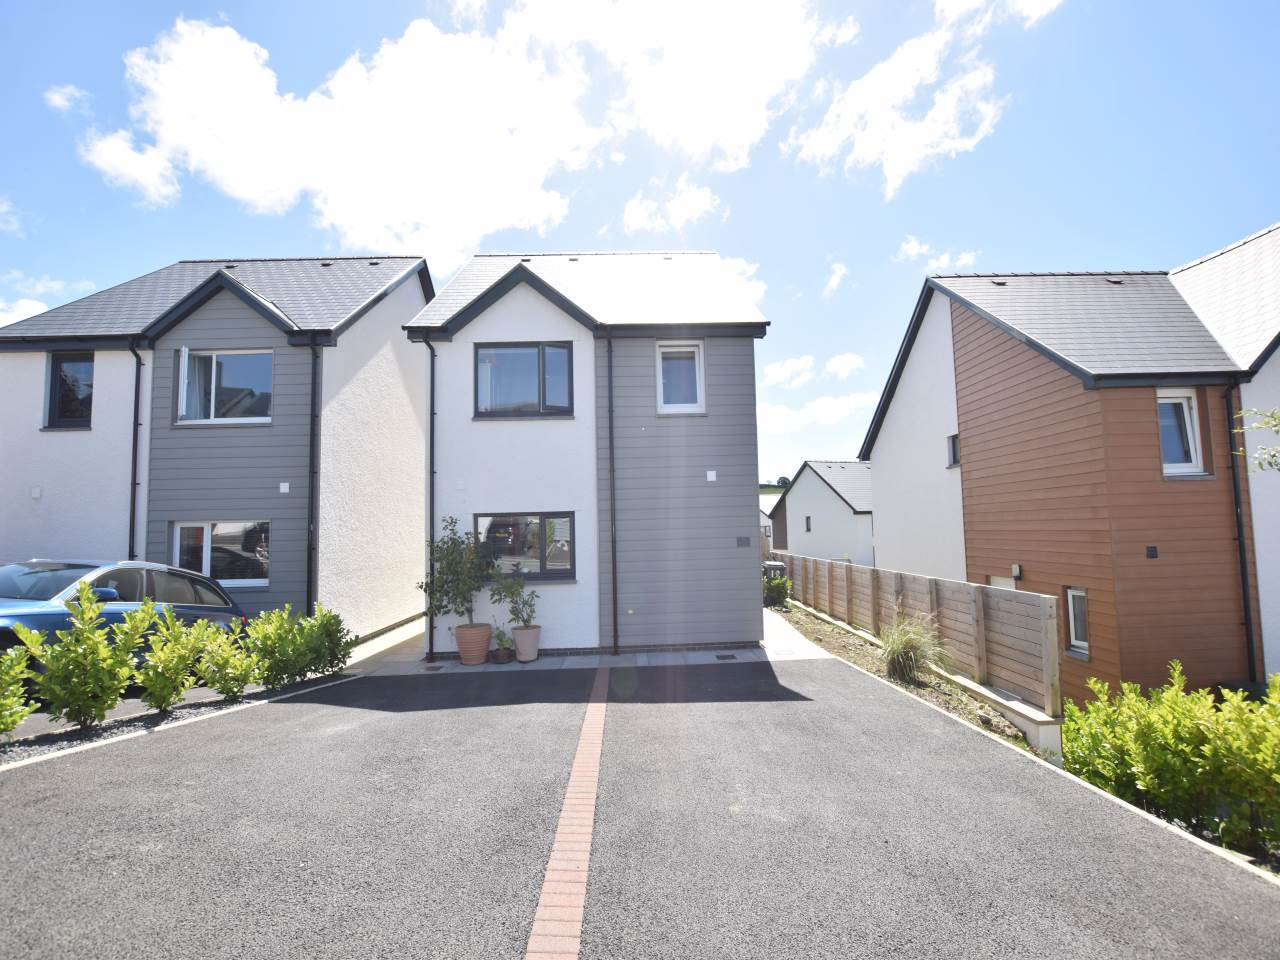 4 bed house for sale in Ger Y Cwm, Penrhyncoch  - Property Image 1